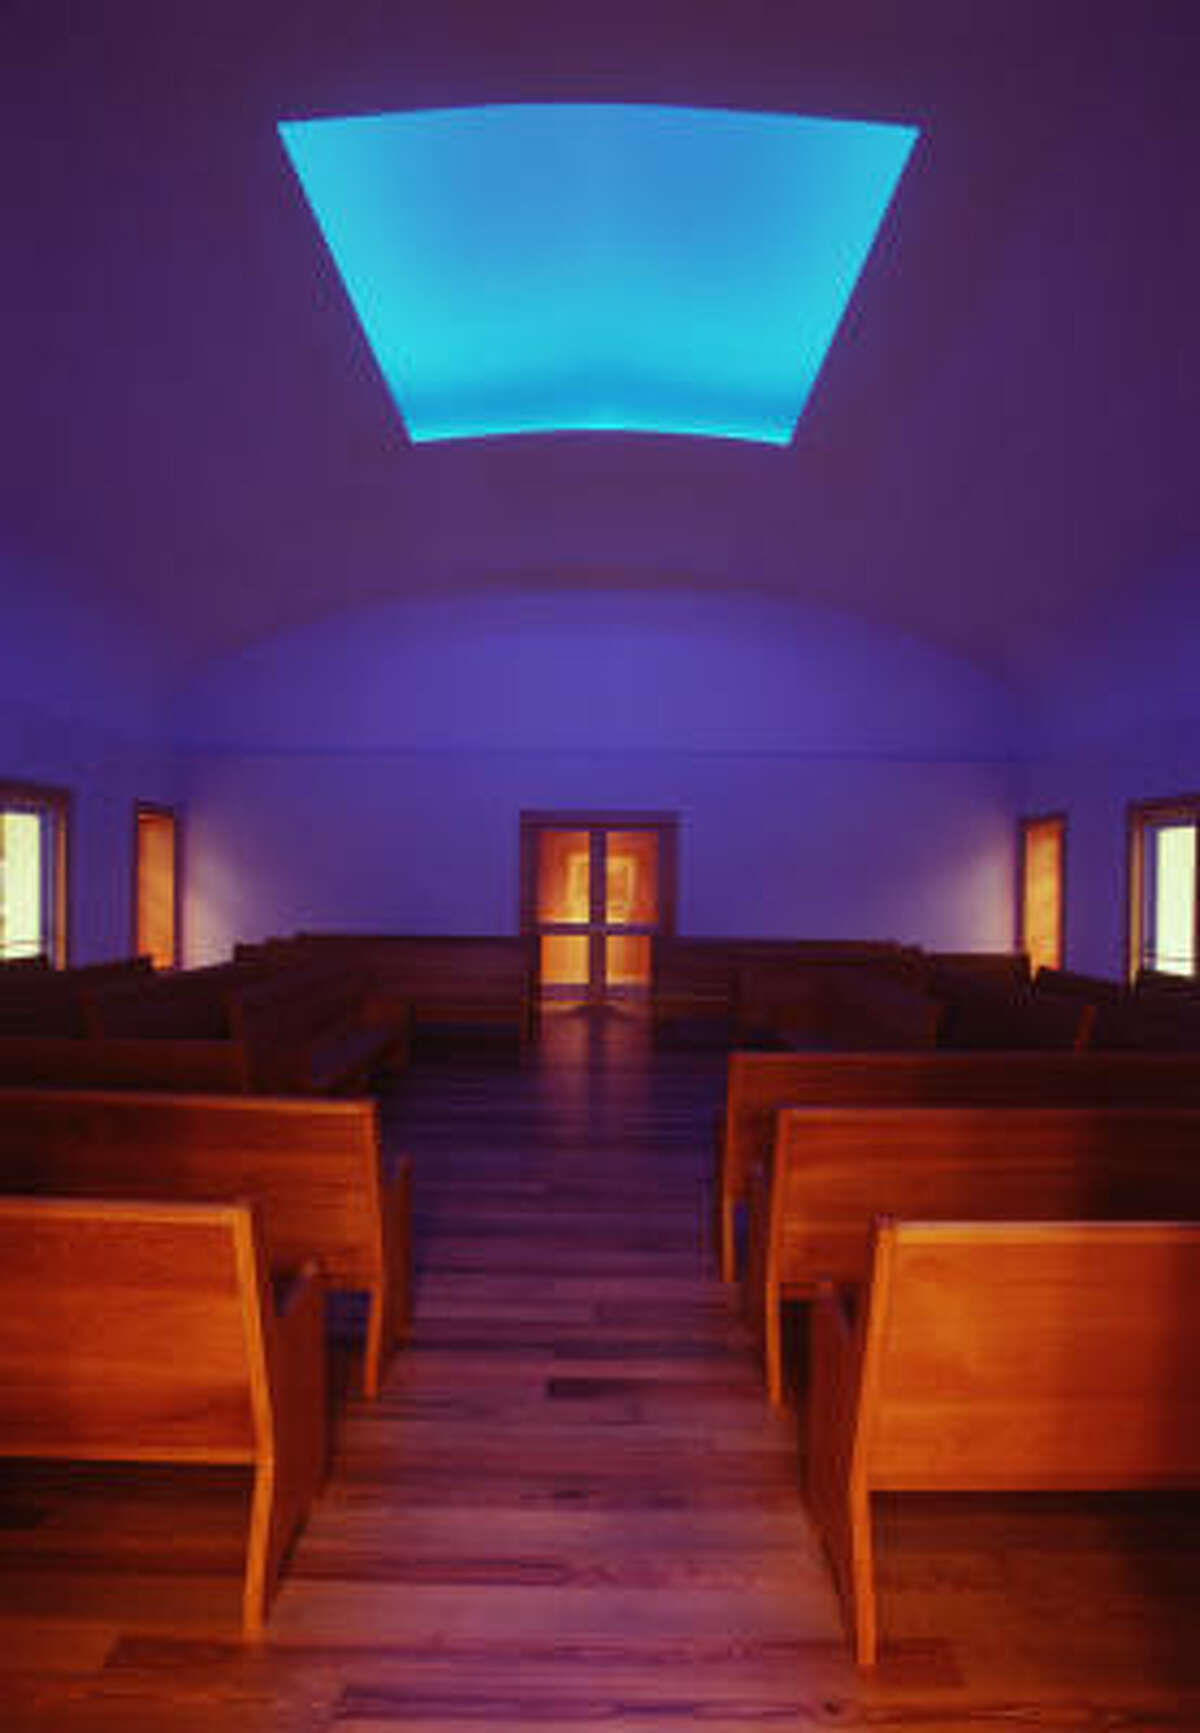 Photos of artist James Turrell's Skyspace from before the roof repairs show the diffferent qualities of light the work lets into the Live Oak Friends Meeting House.